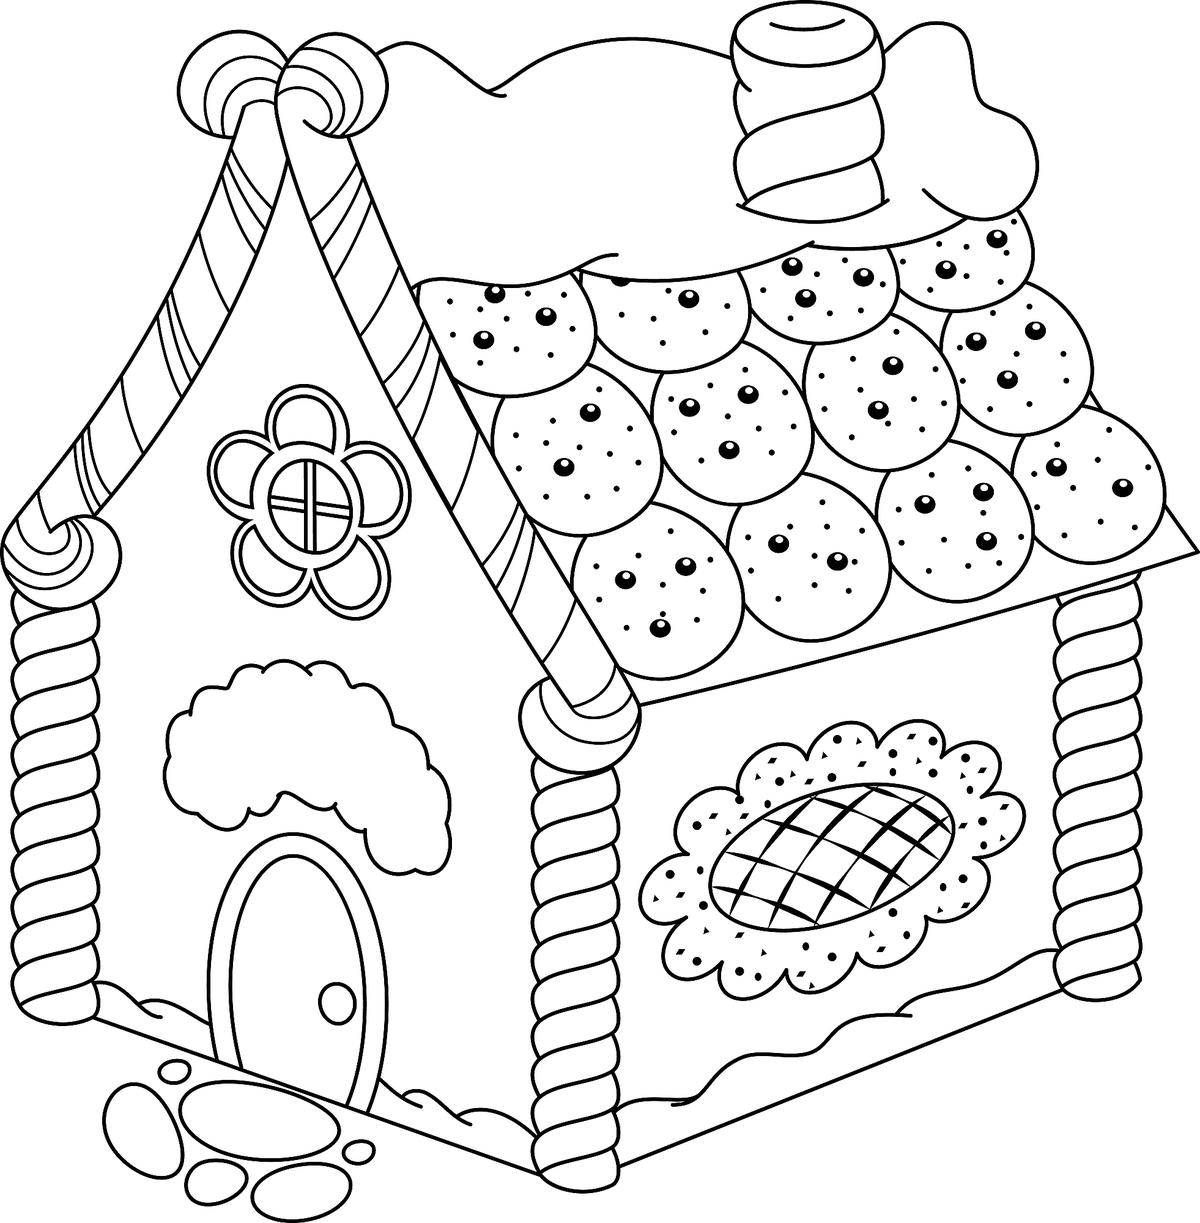 gingerbread coloring pages free printable gingerbread man coloring pages for kids pages coloring gingerbread